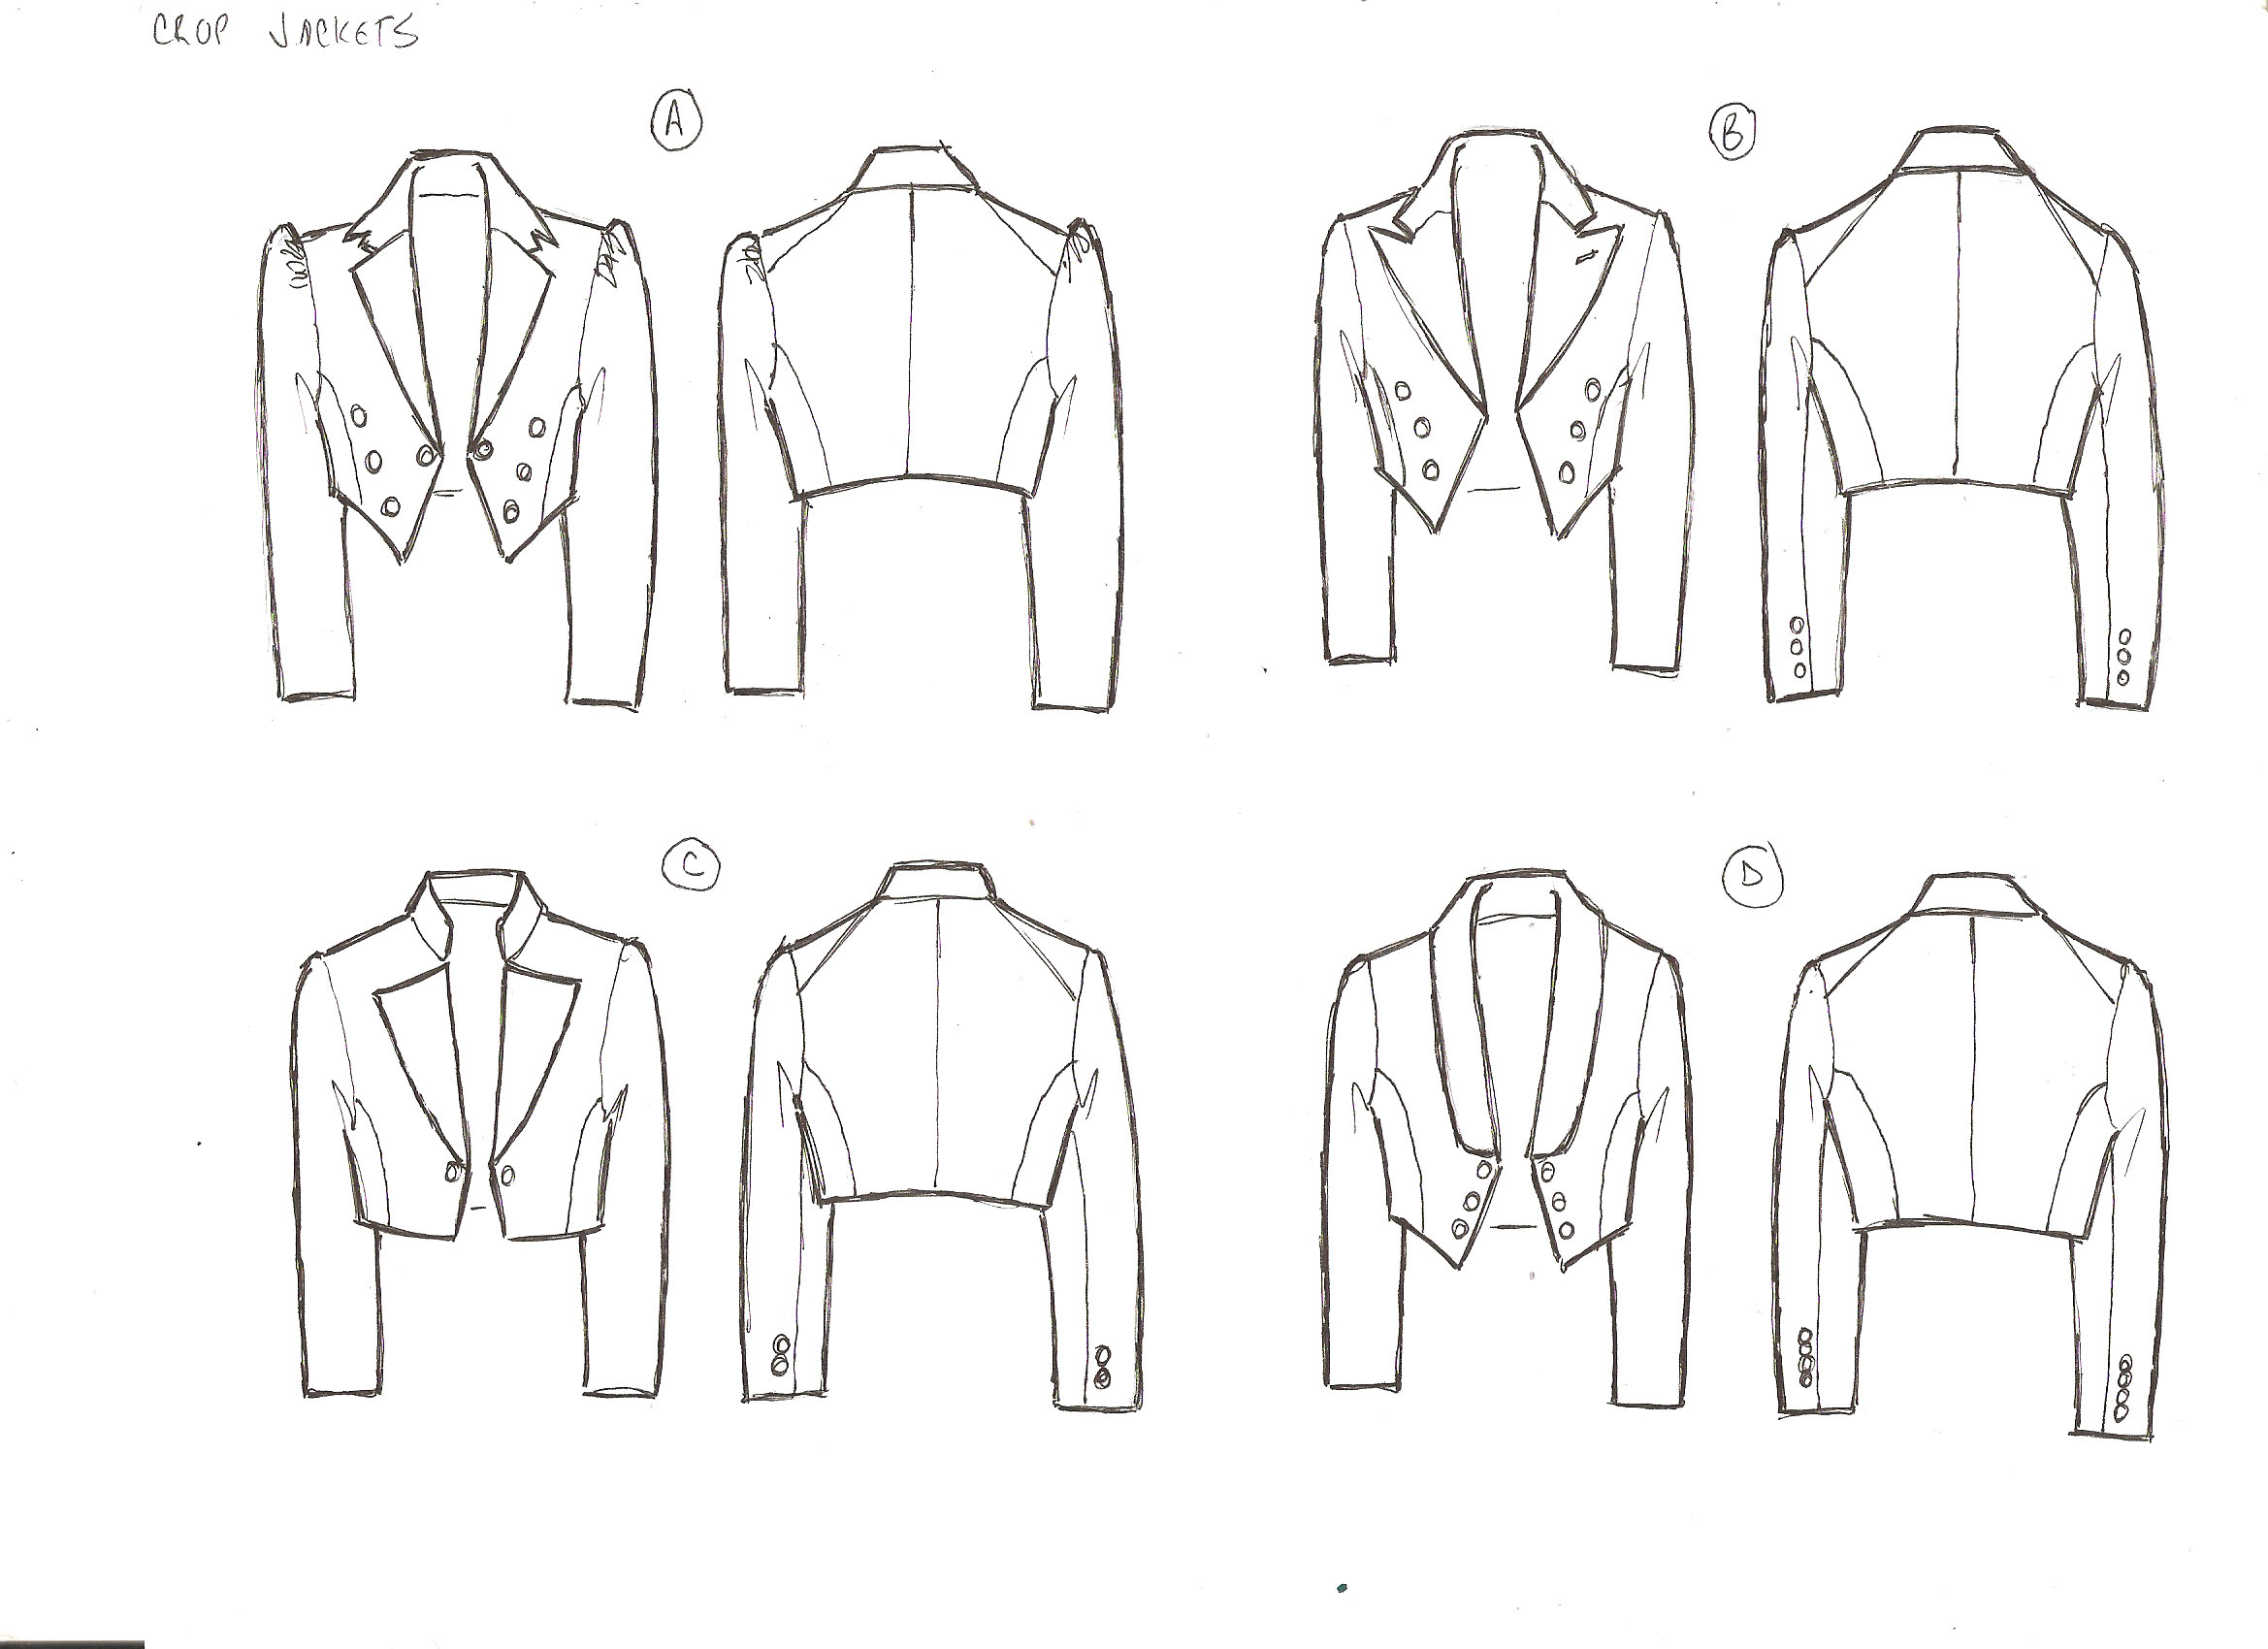 a022c7dd5b2 Women's Tuxedo Jackets for Lesbian Weddings